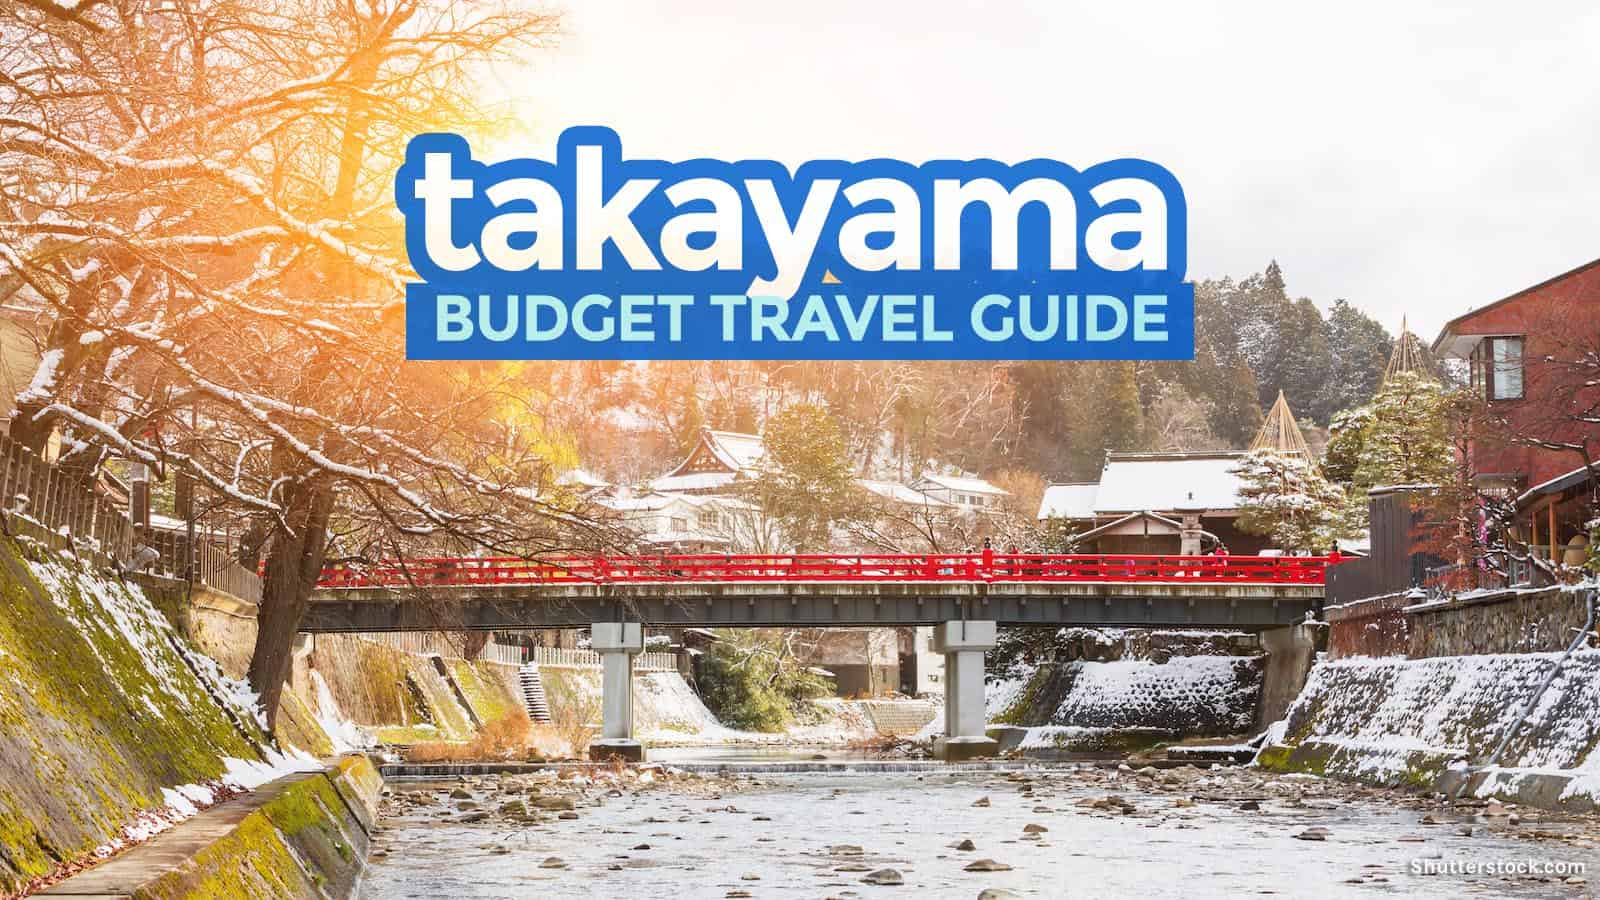 TAKAYAMA TRAVEL GUIDE: Budget Itinerary & Things to Do